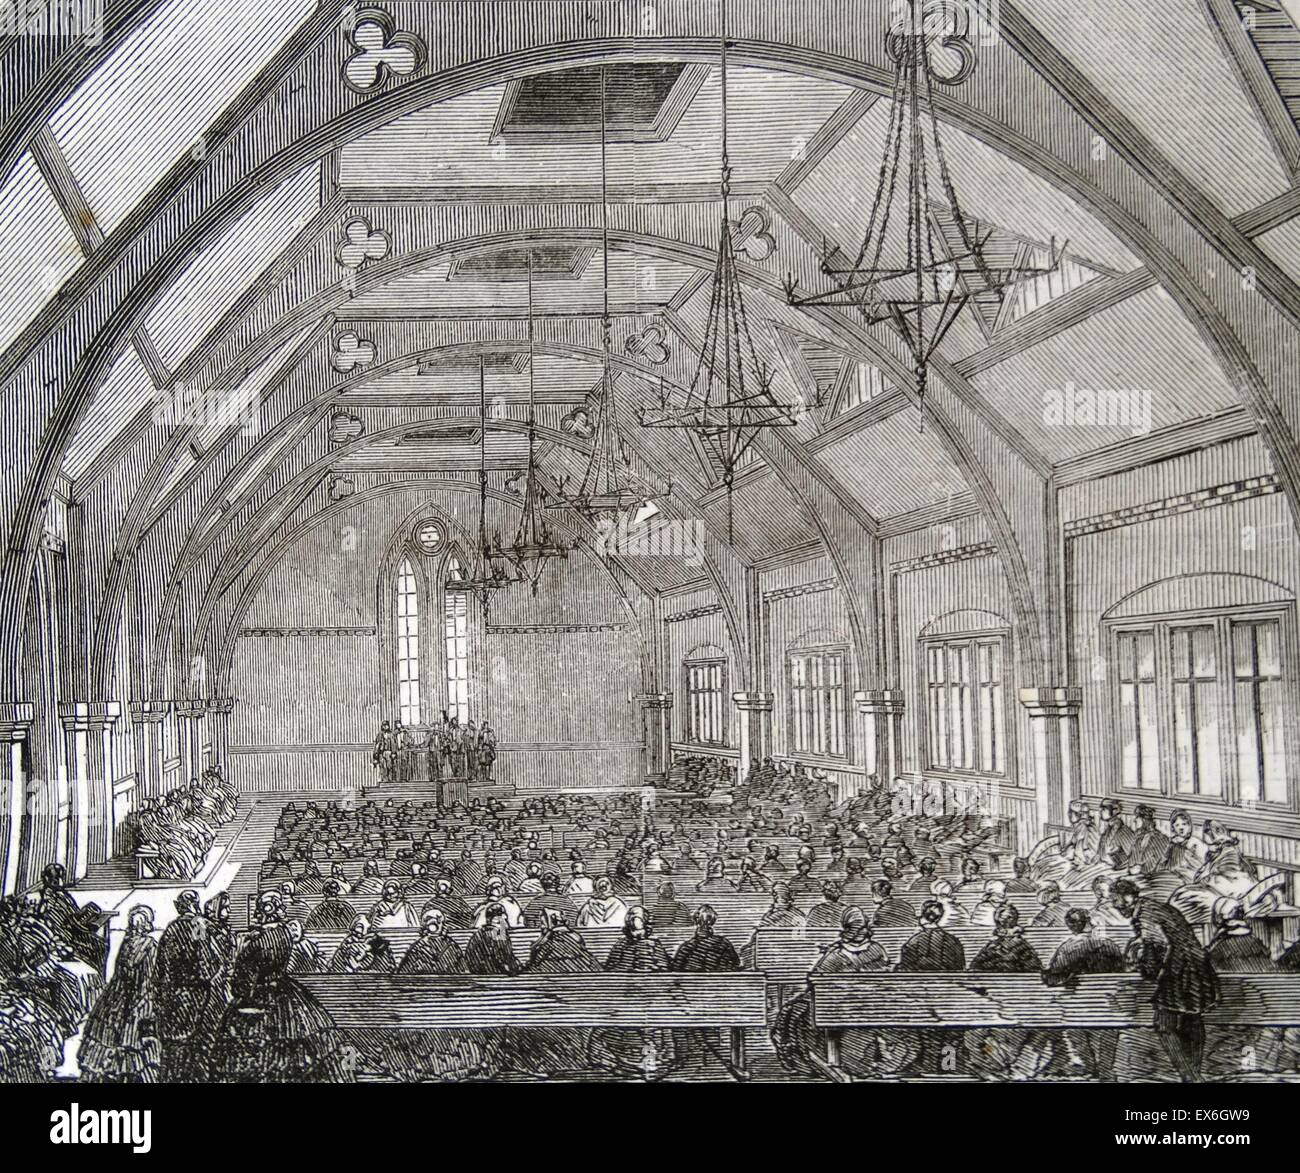 Engraving of the interior of the National School, St. Giles'-in-the-Fields. Dated 1860 - Stock Image